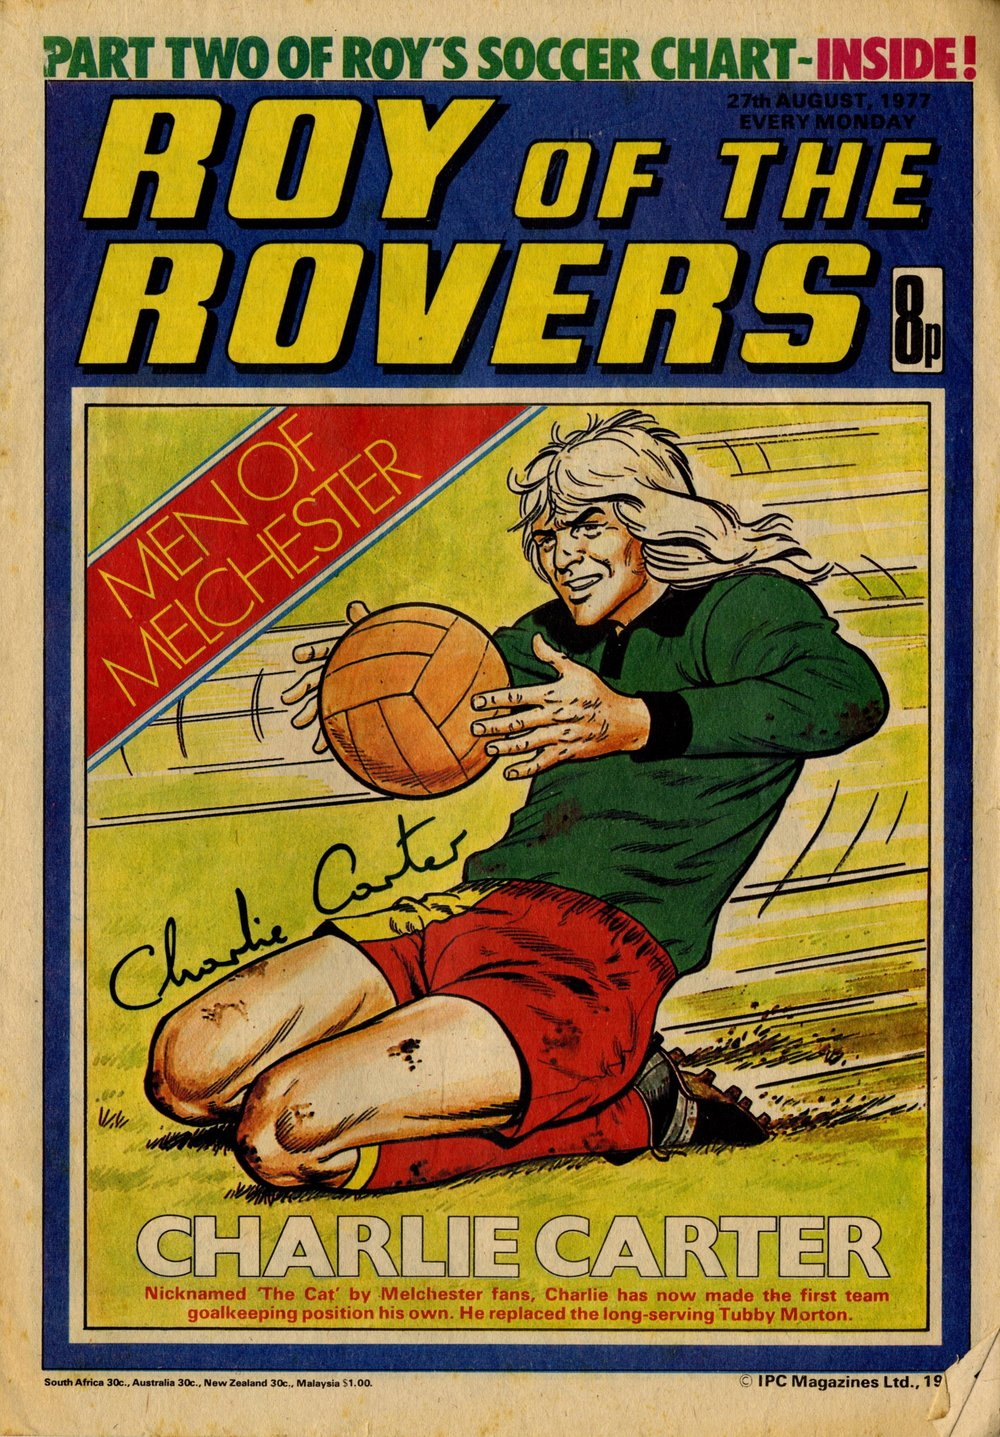 27 August 1977: Roy of the Rovers  (David Sque (artist))